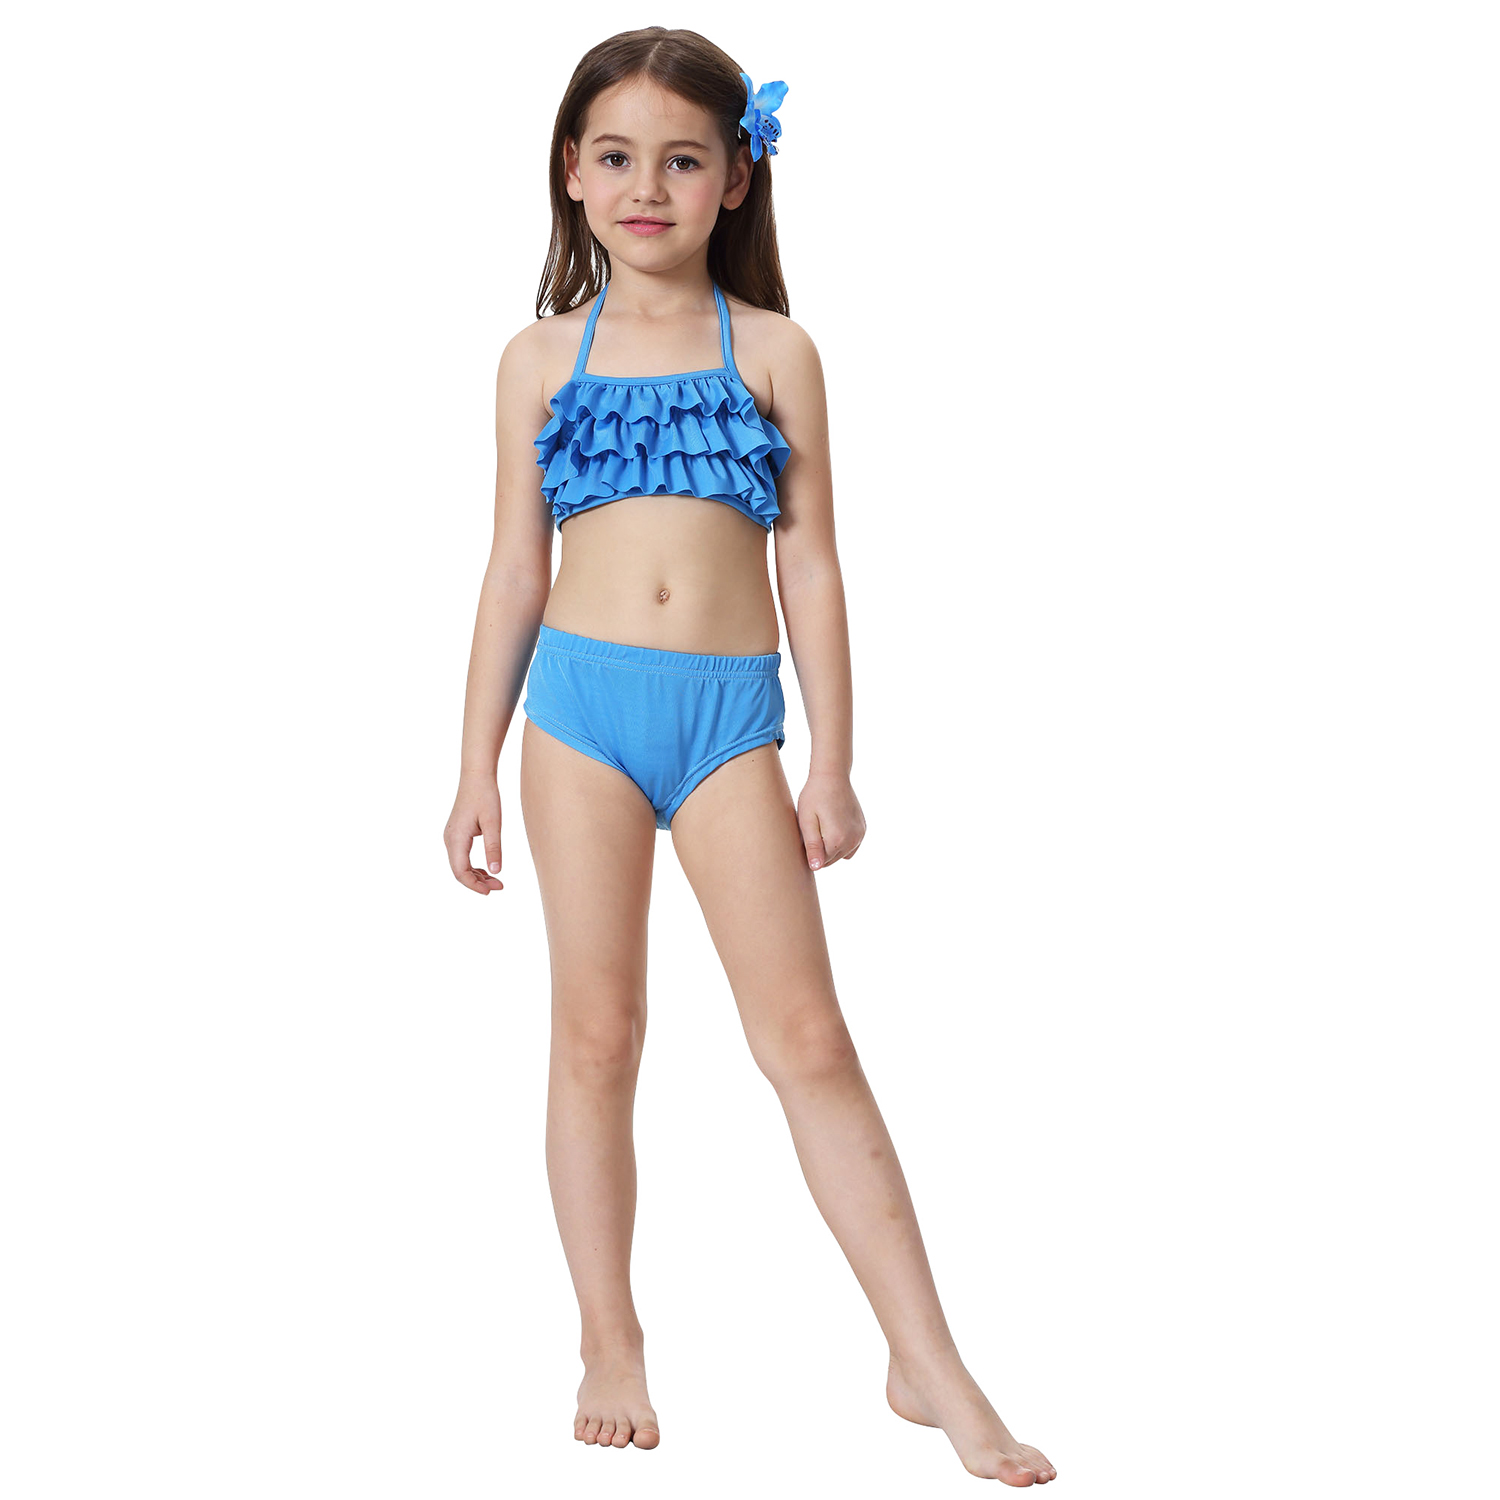 UK STOCK Mermaid Tails Swimmable Monofin Swimsuit for Girls  Kids Swimming BLUE